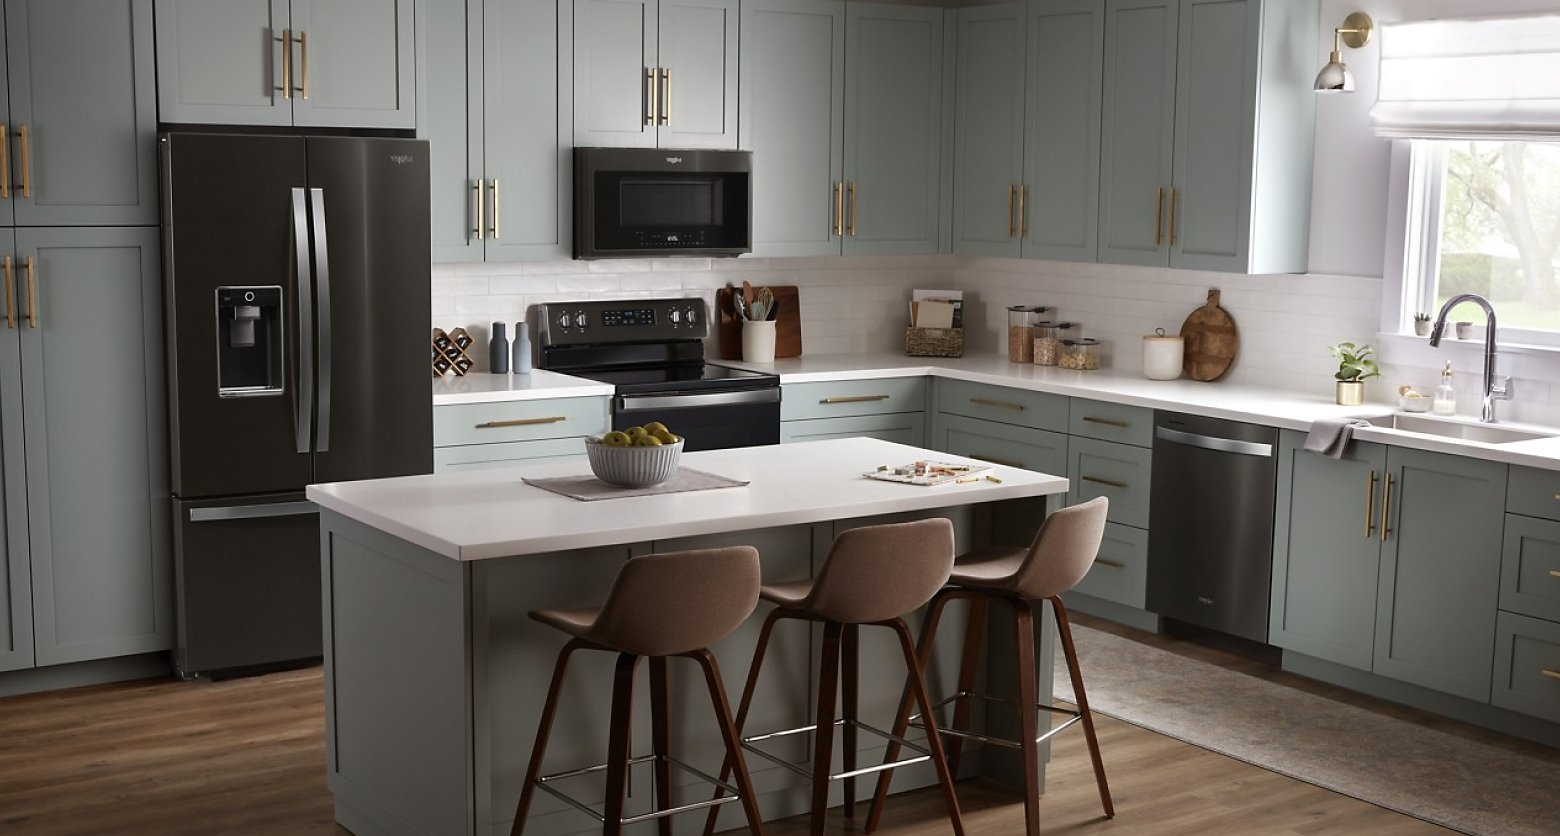 Gray kitchen featuring Whirlpool®  appliances in black stainless steel